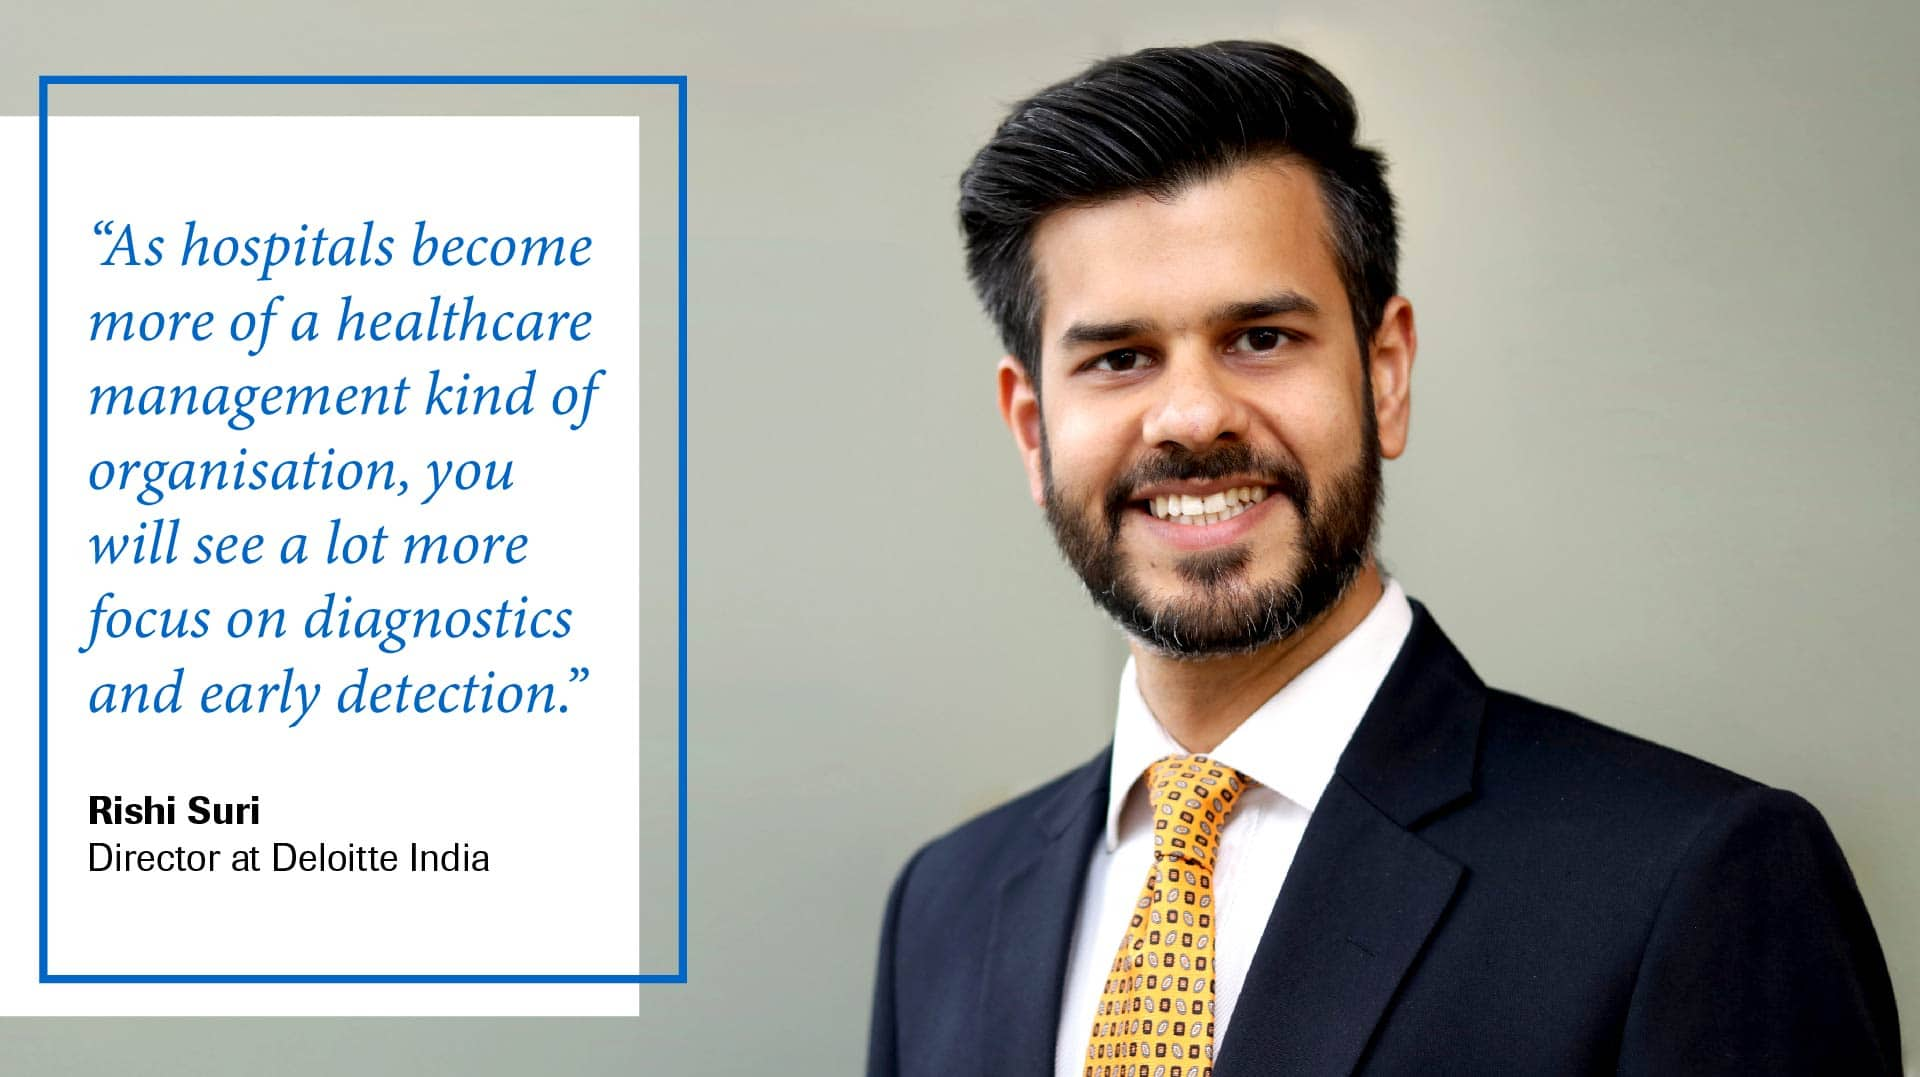 A quote from Rishi Suri, Director at Deloitte India, exploring how hospitals in India may evolve.